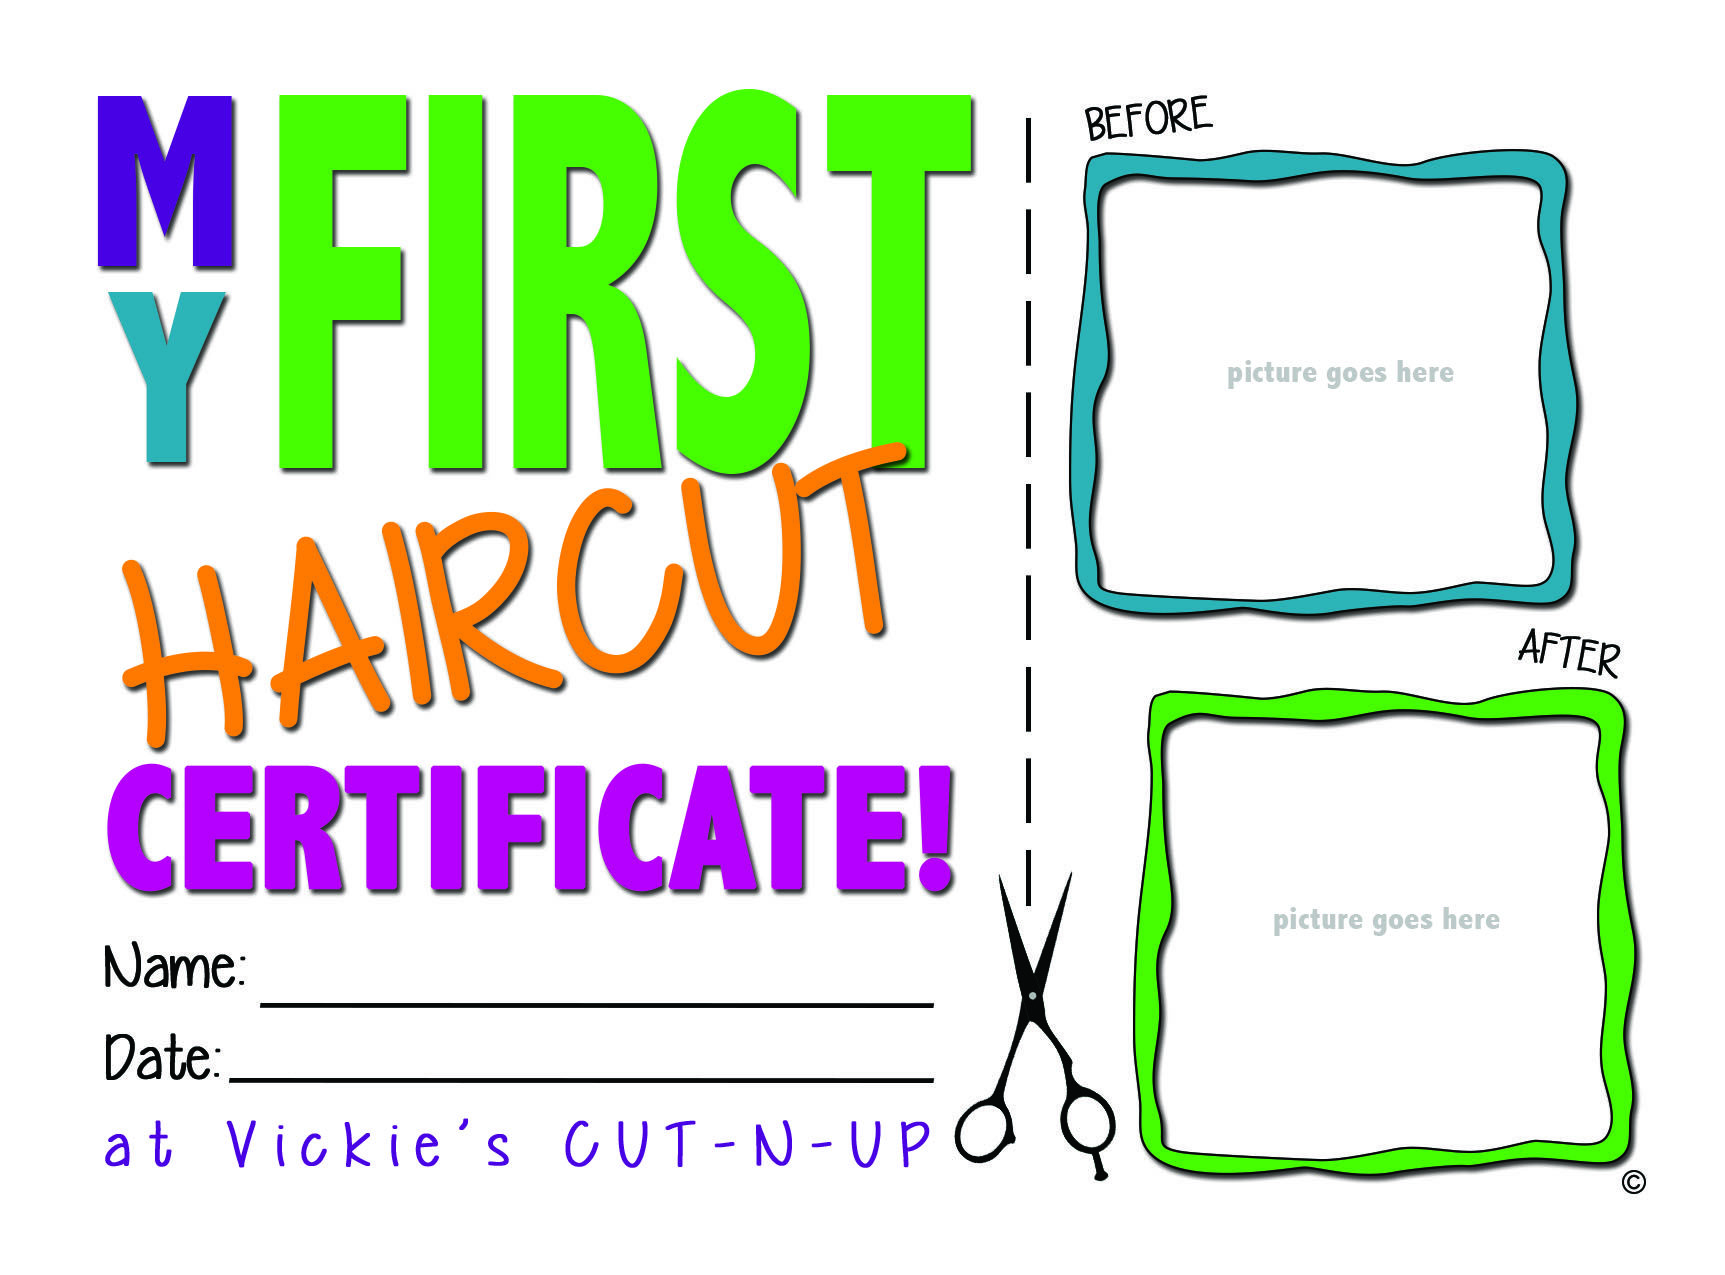 Baby S First Haircut Certificate 25 Fuhrmannmedia Babysfirsthaircut Facebook